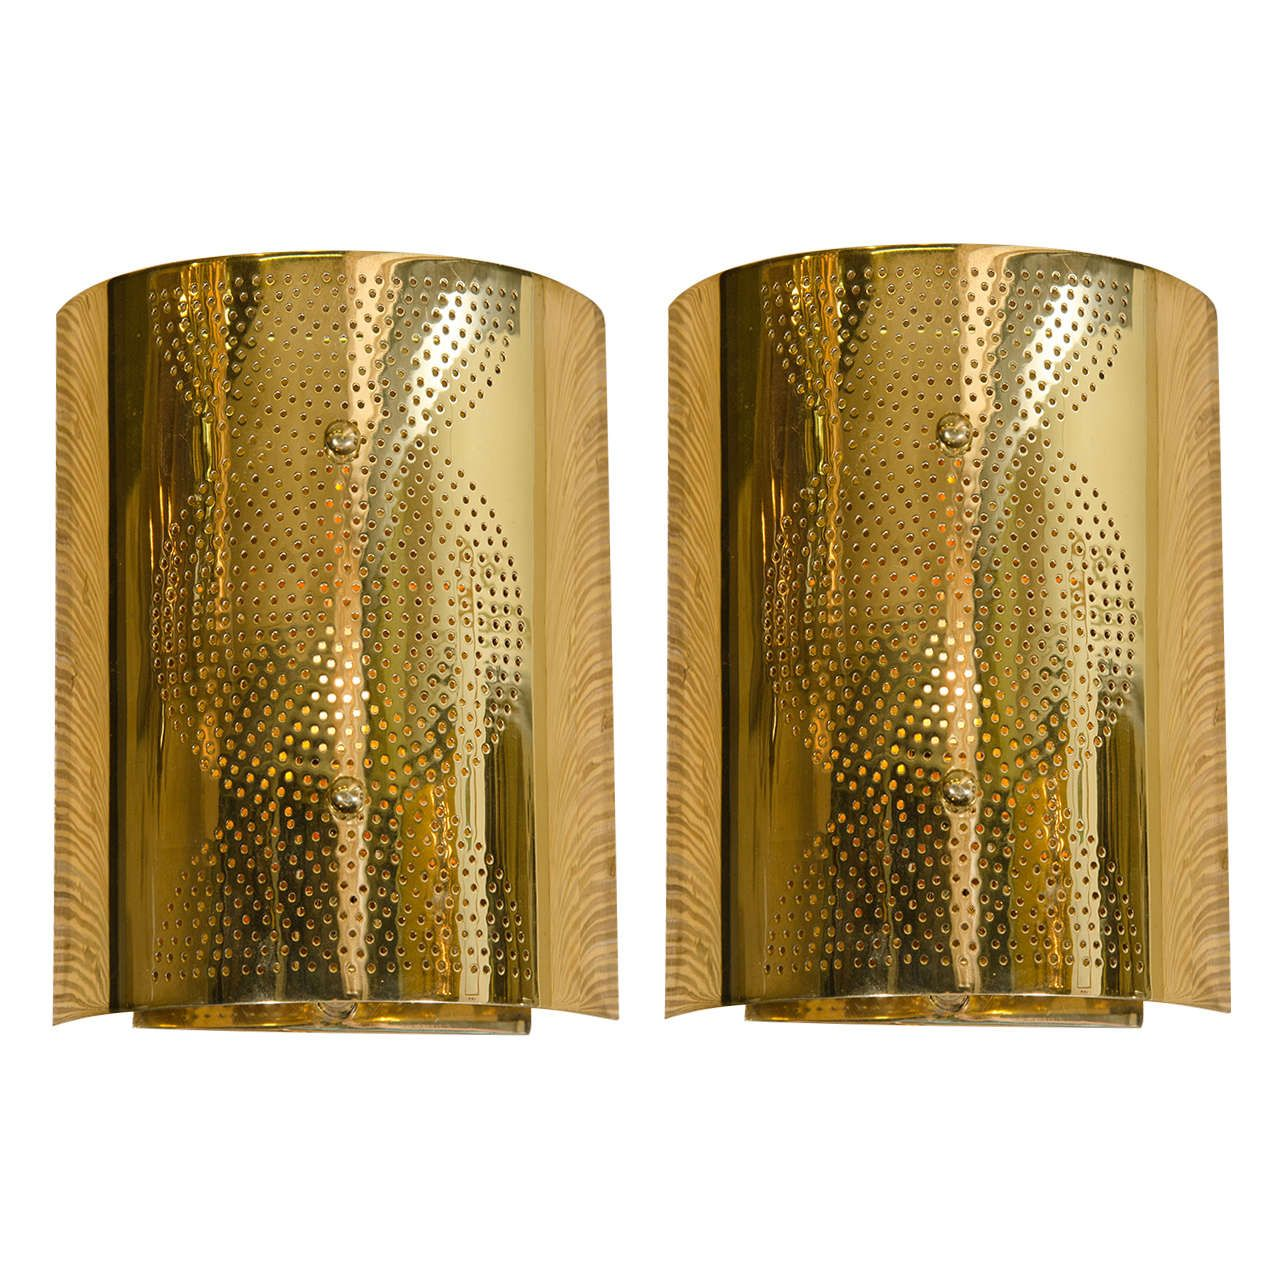 Contemporary Perforated Brass Wall Sconce | SCONCE | Pinterest ...